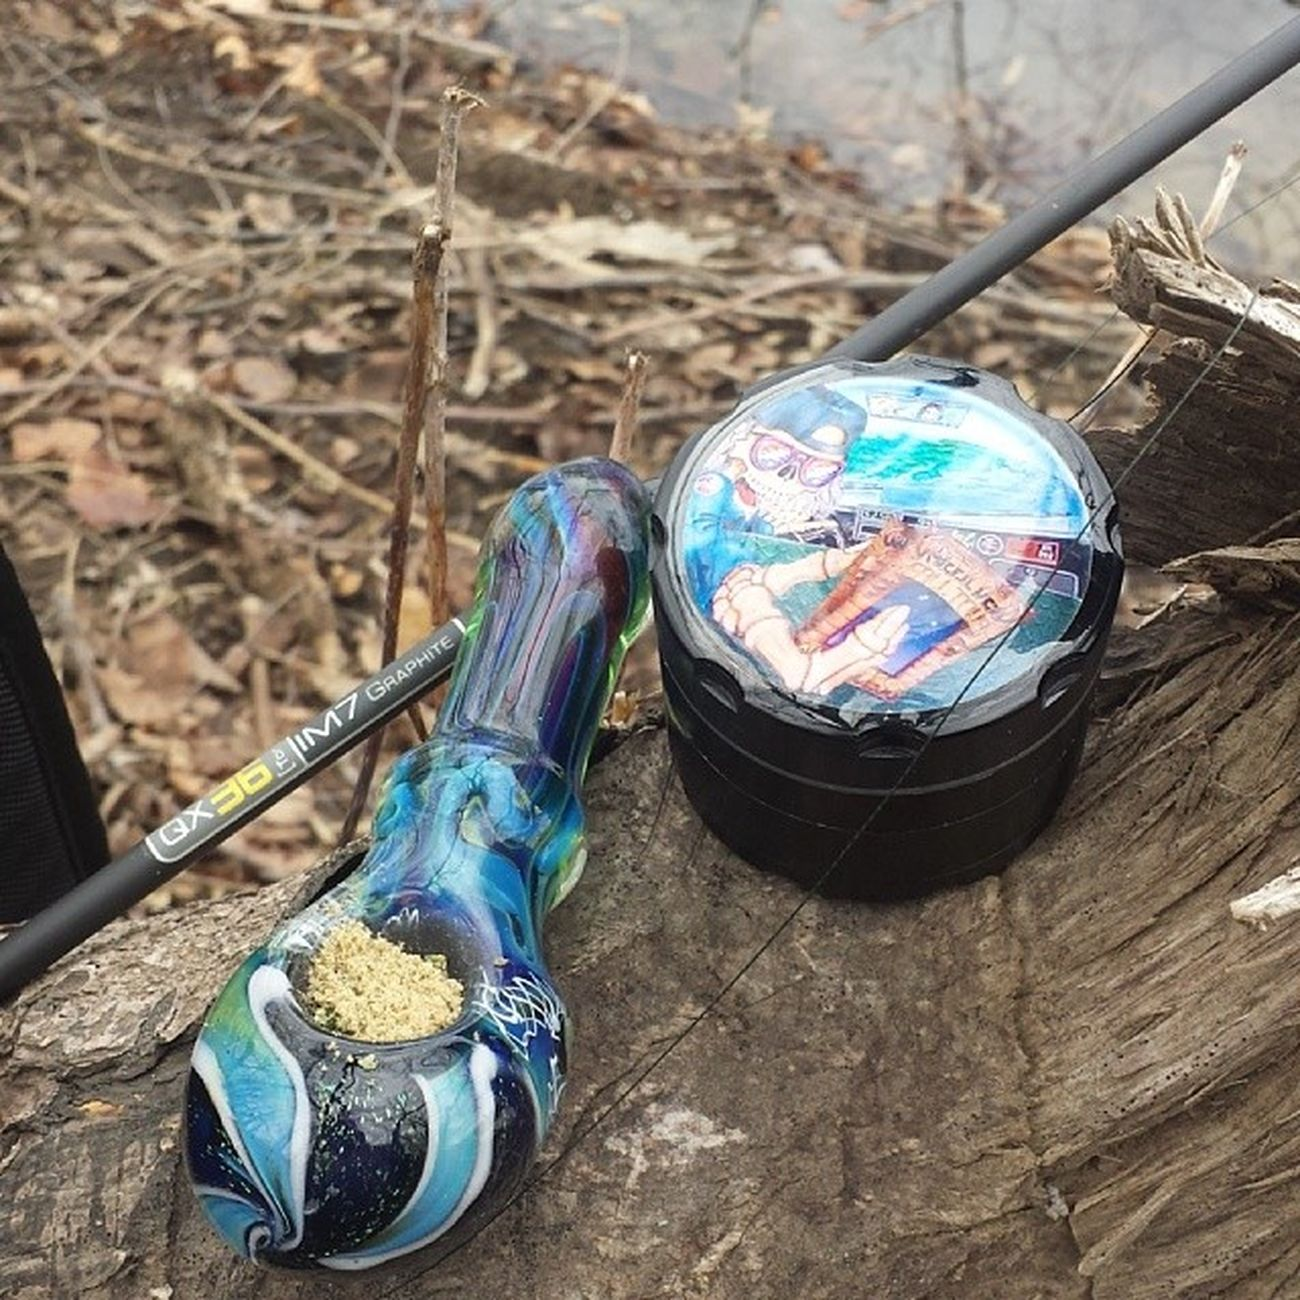 Oh how Ive missed you open water Fishing Fish Glass Gratefuldead Quantum Openwater River Merrimackriver Keif Outdoors Highsociety HighTimes Ffourtwenty Thc Marijuana Bud Greens Goodness Gratefullydeadicated Graphite Nofilter Glorious Stonernation